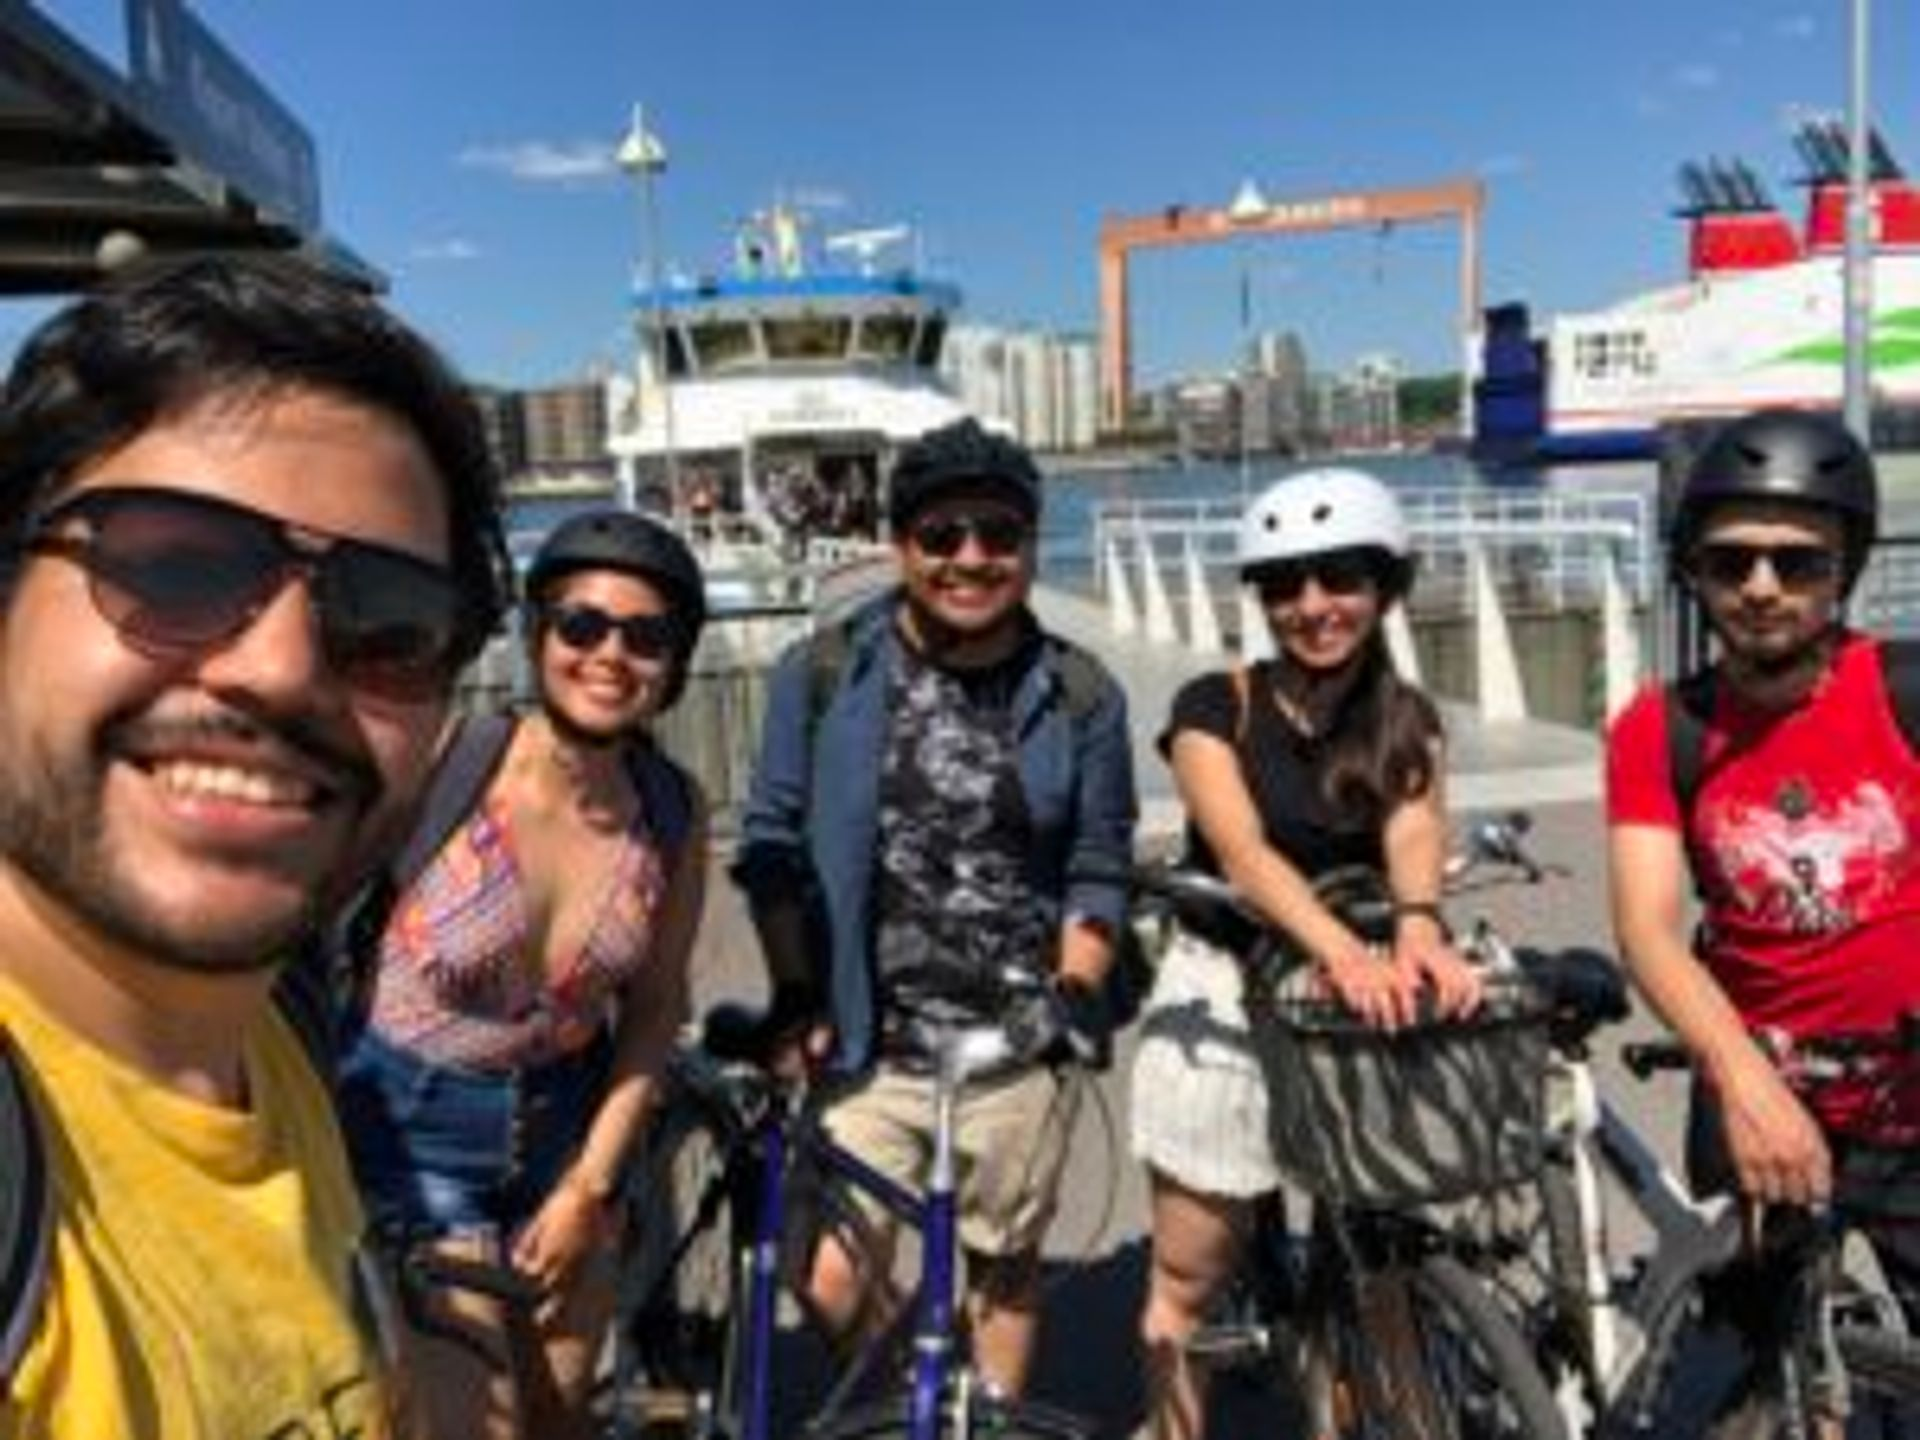 Camilo and three friends stand in front of a ferry with their bicycles.